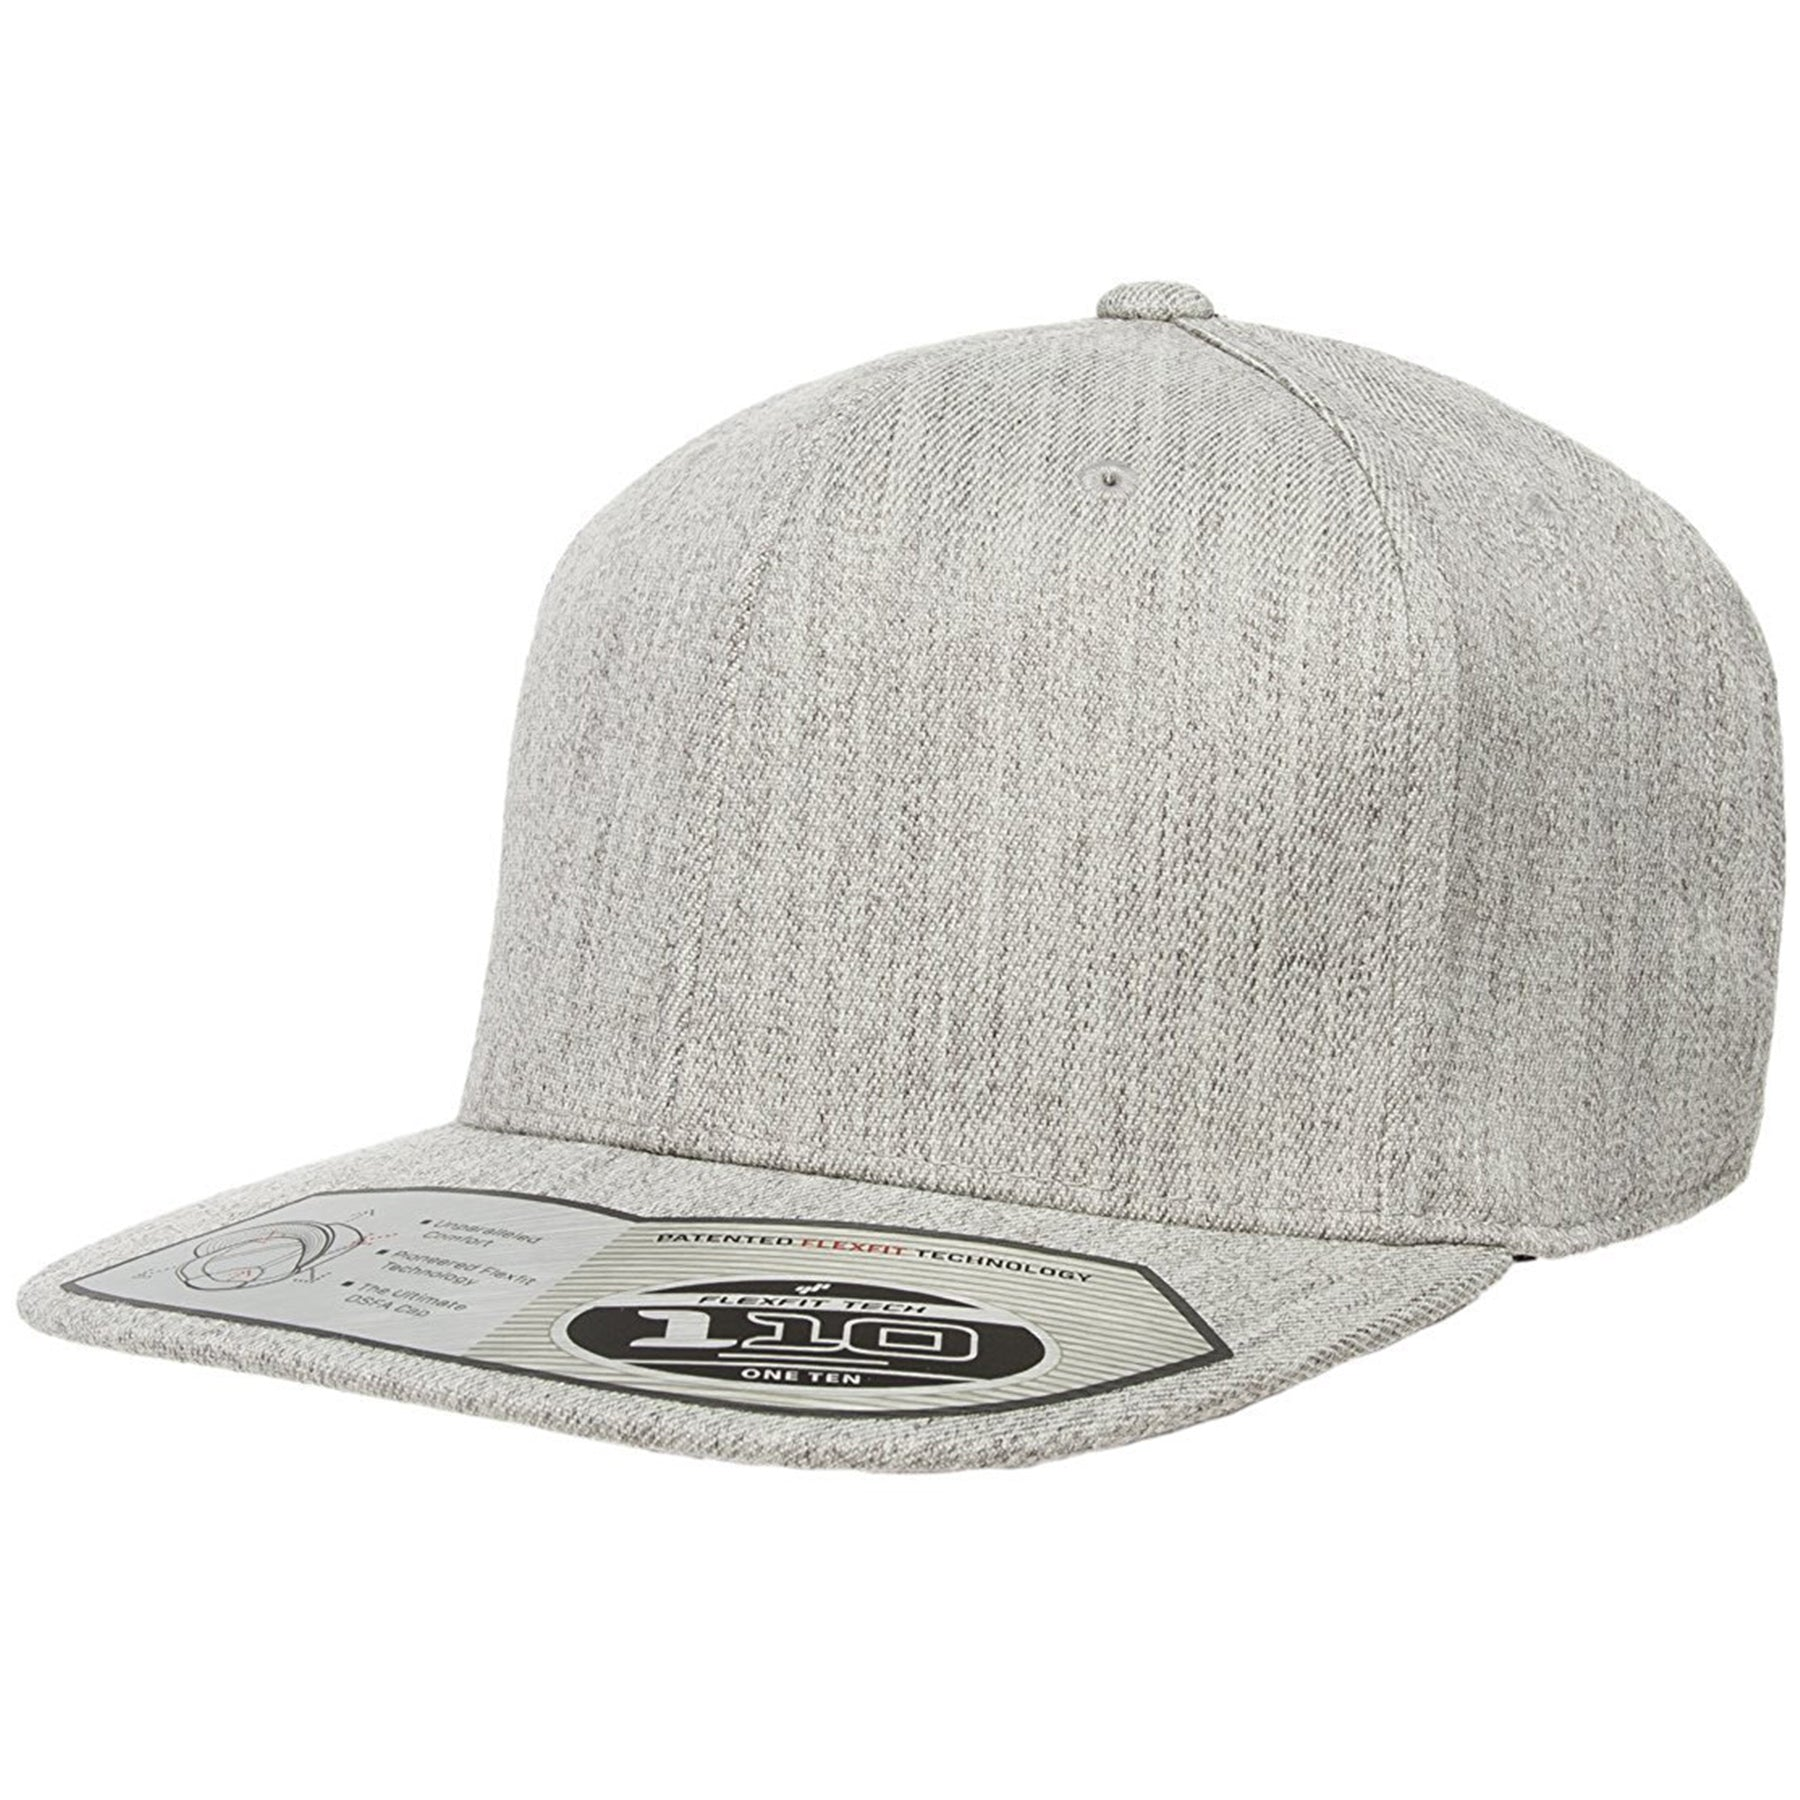 9b8ed788 The 110 flexfit snapback is solid heather with a high structured crown,  flat brim,